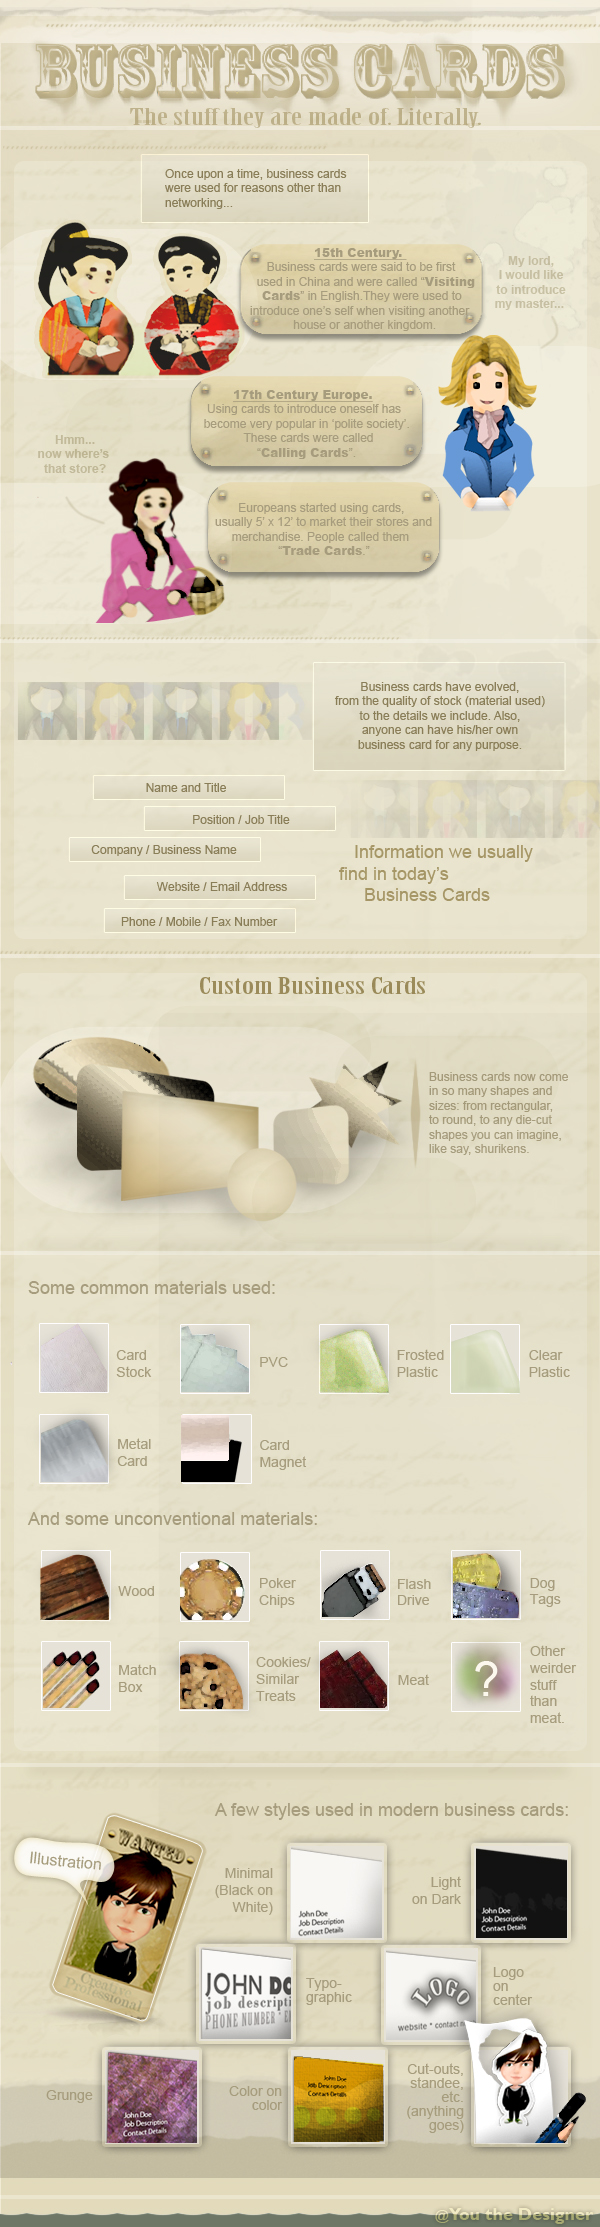 busines-cards-infographic-01